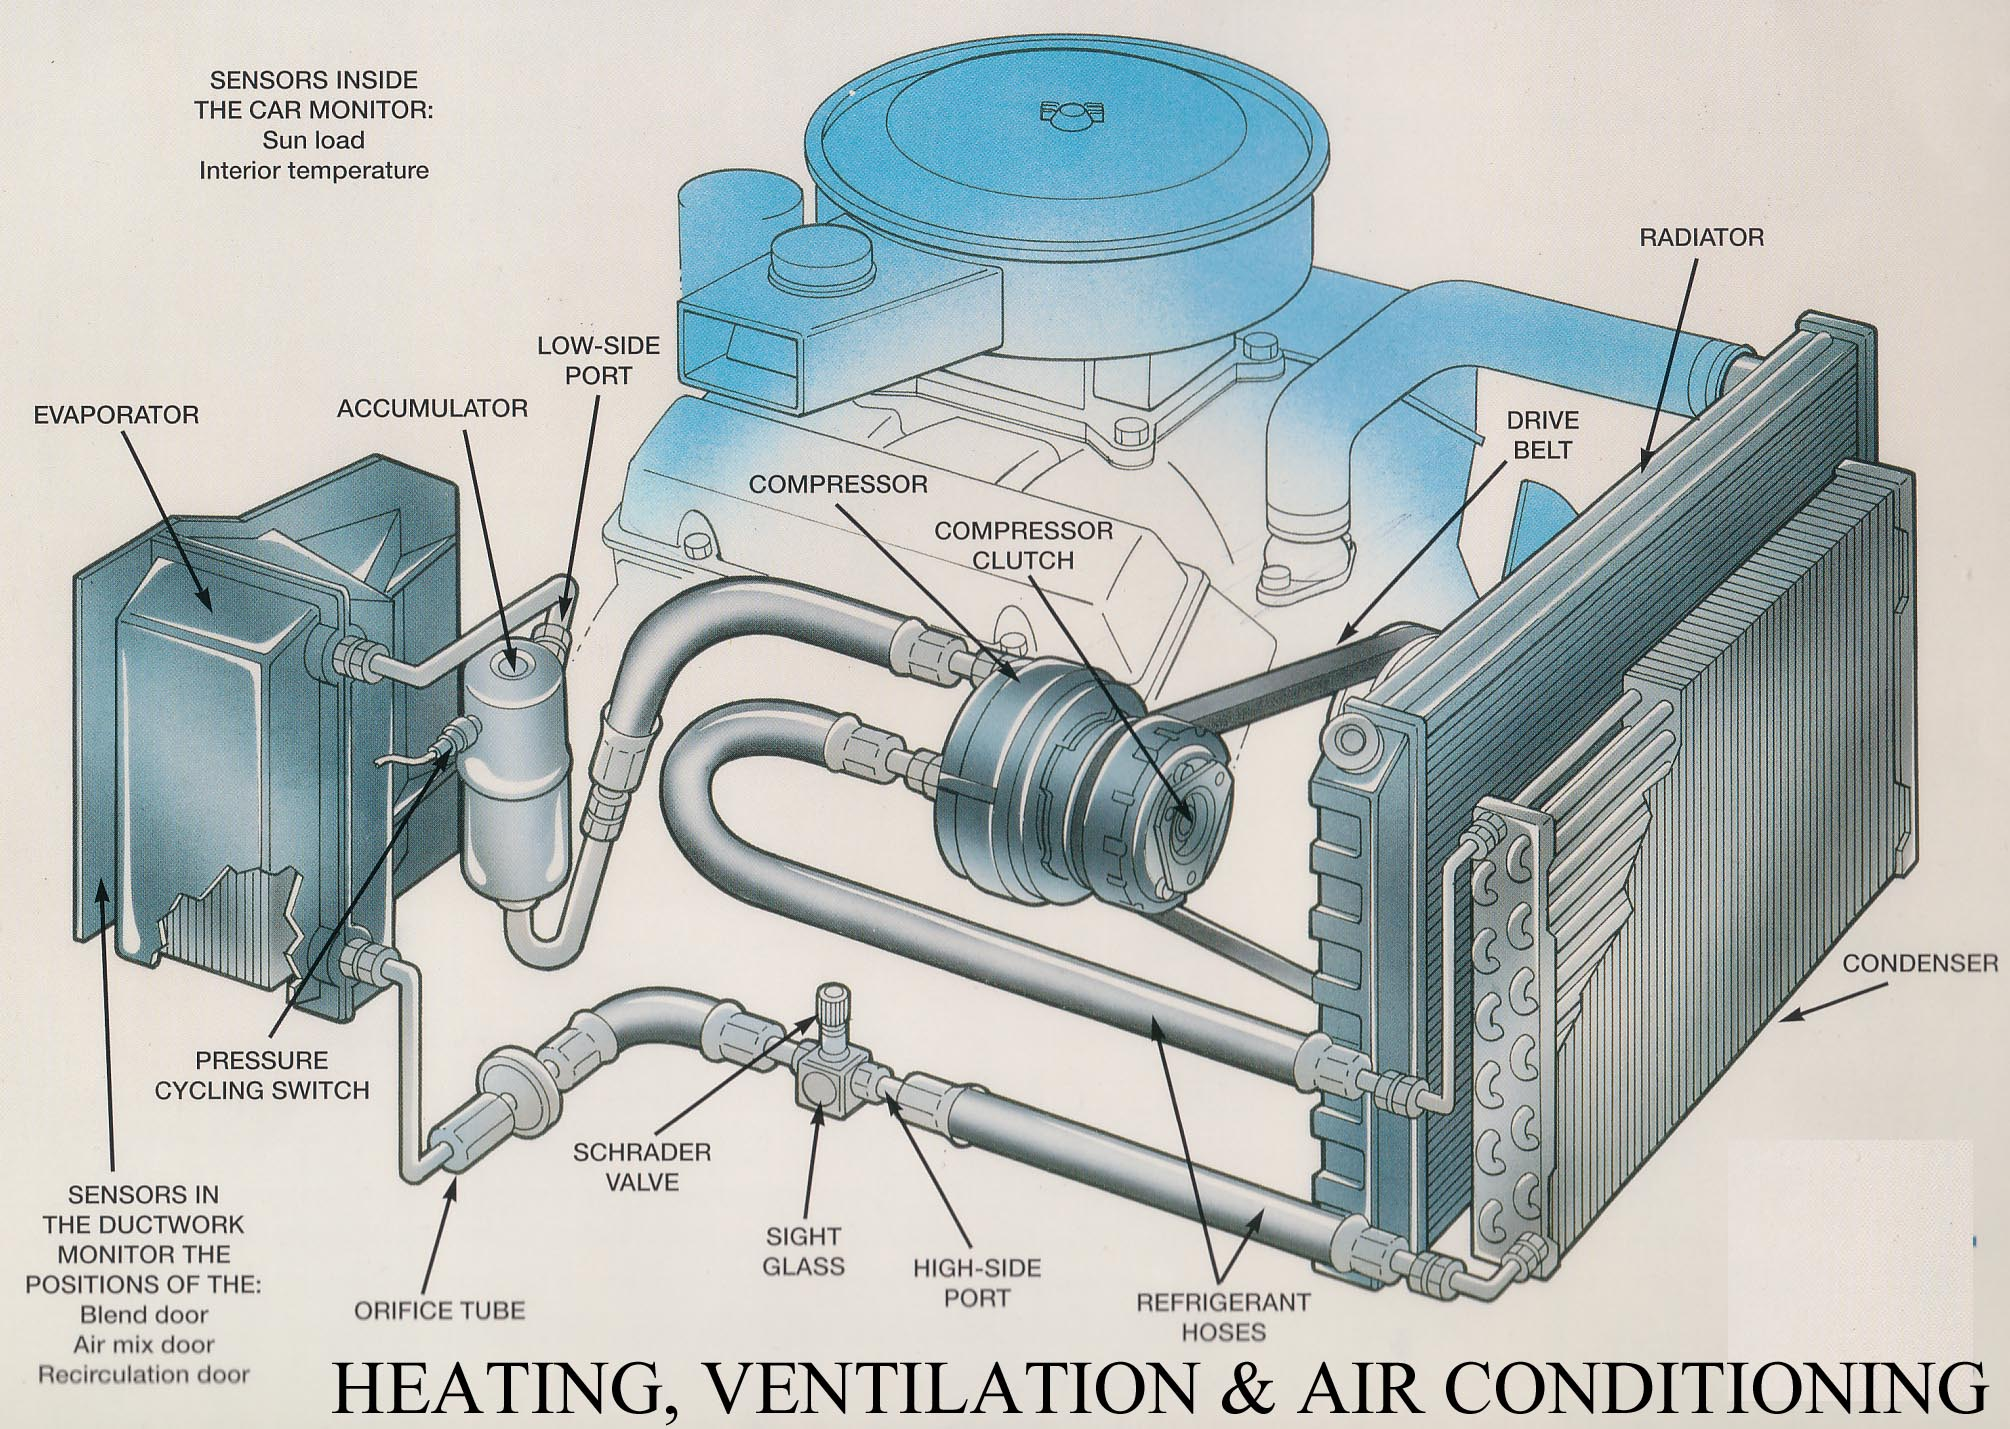 1981 Ford Charging System Wiring Diagram Automotive A C And Heating System Repair Amp Service